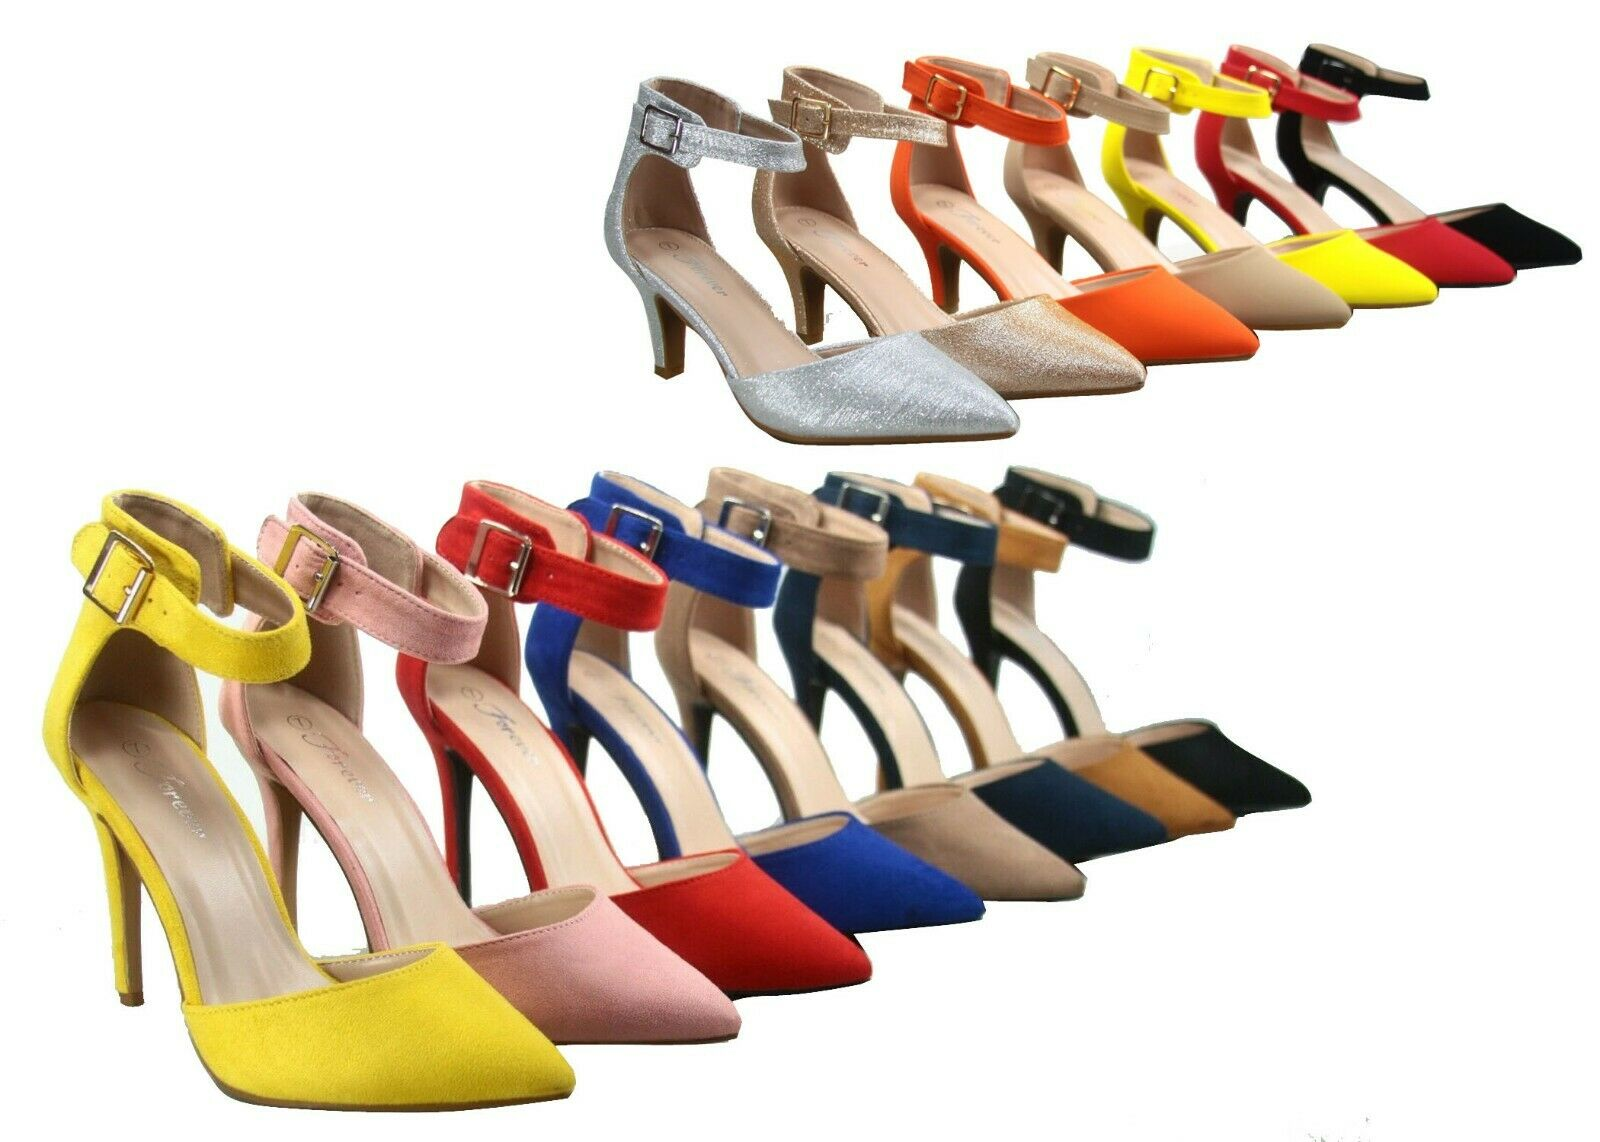 NEW Women's Pointed Toe Ankle Strap Stiletto Low High Heel